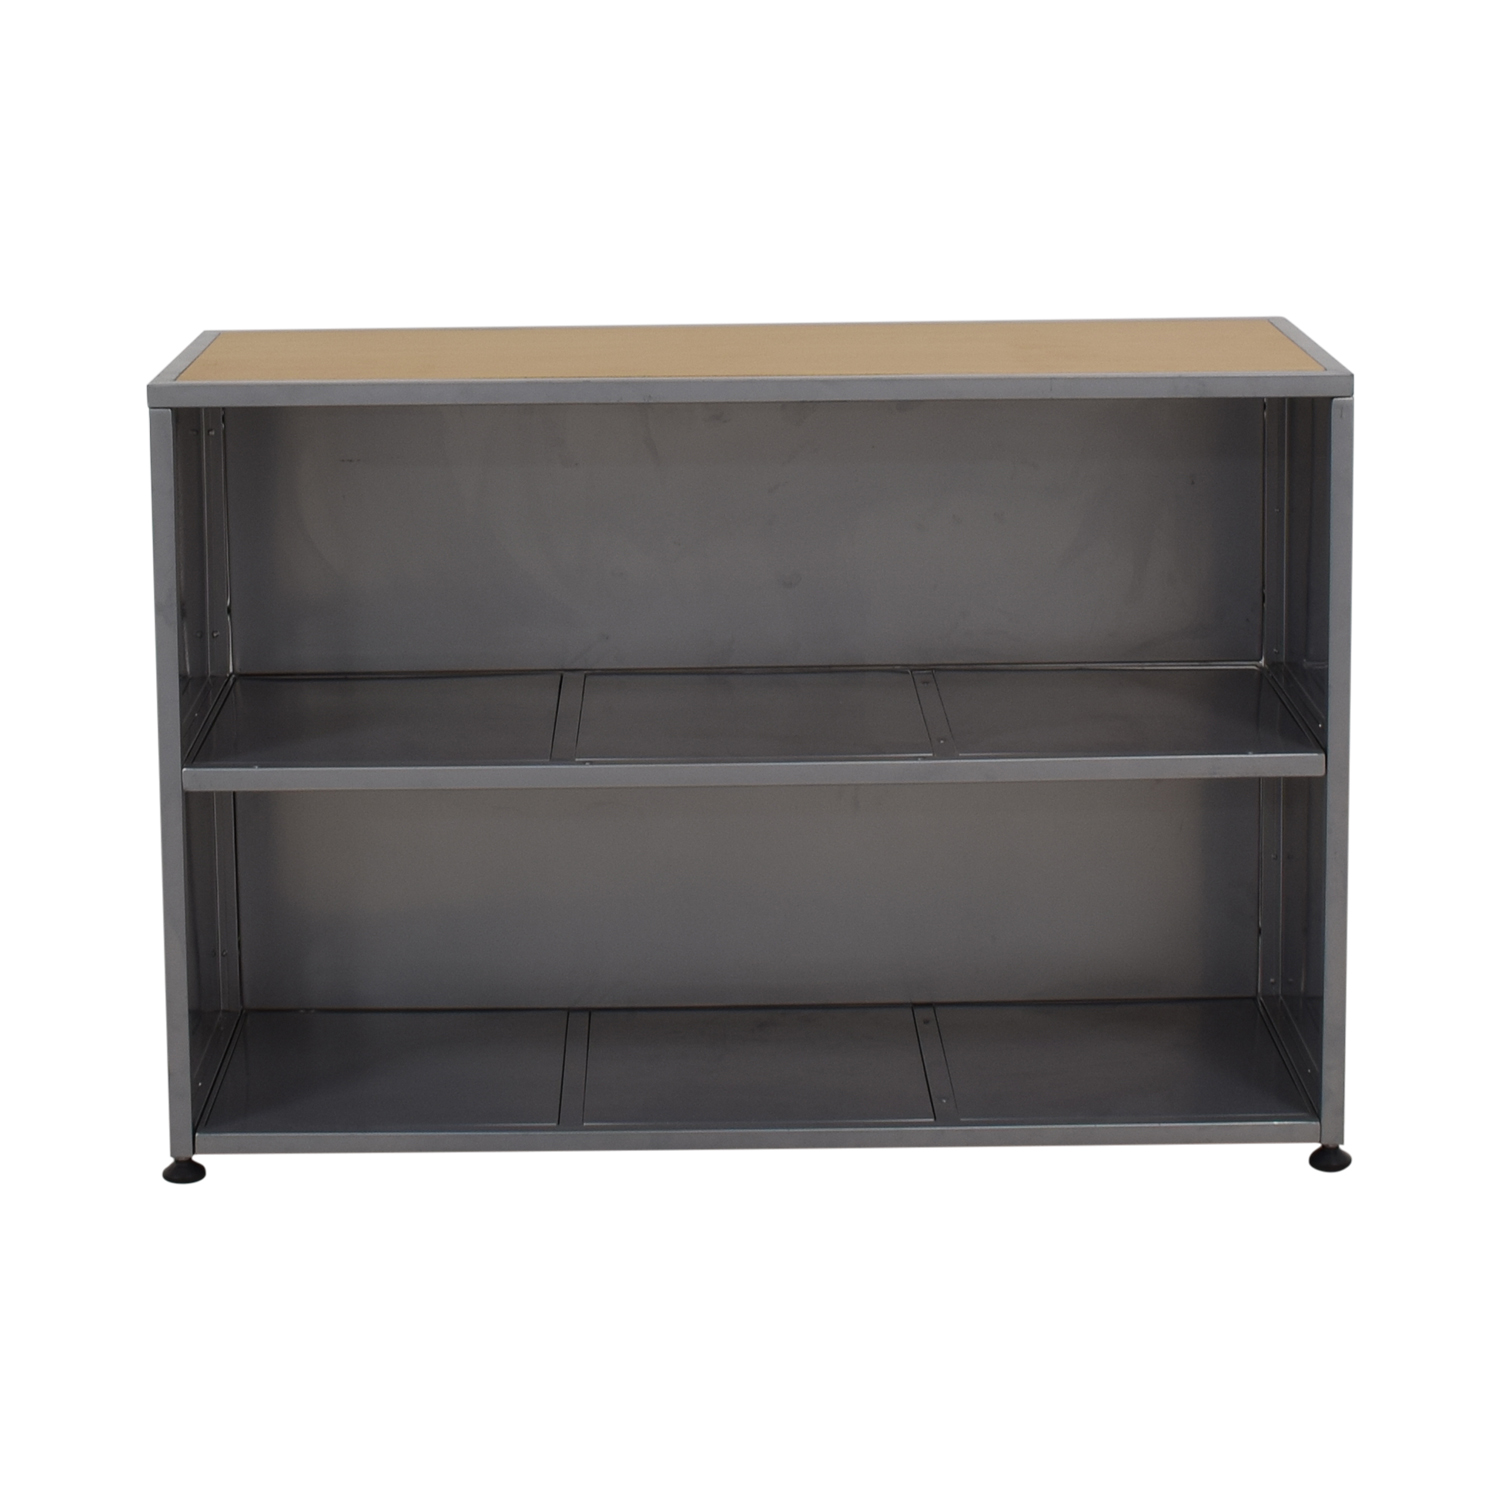 Industrial Grey Metal and Wood Bookshelf / Bookcases & Shelving